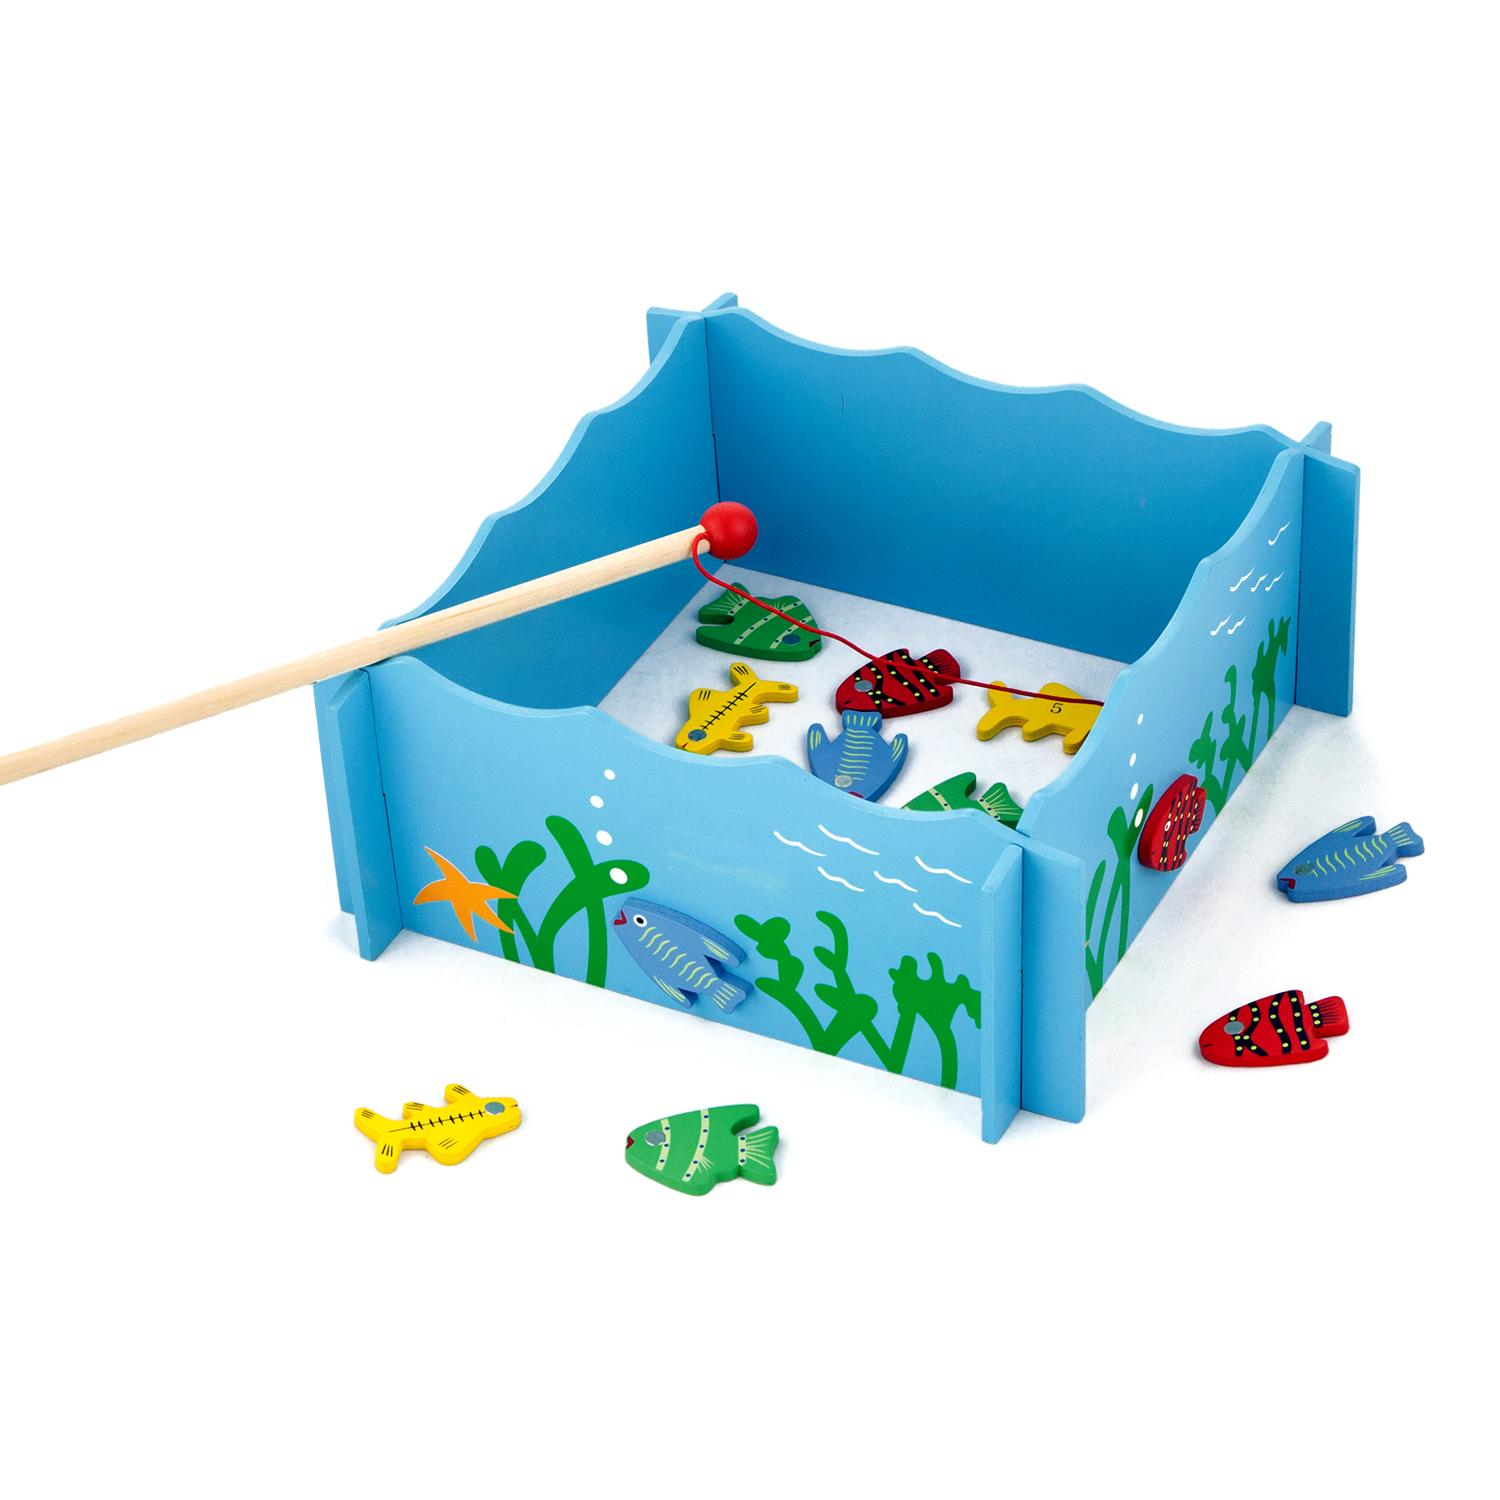 Buy Wooden Magnetic Fishing Game Wooden Toys